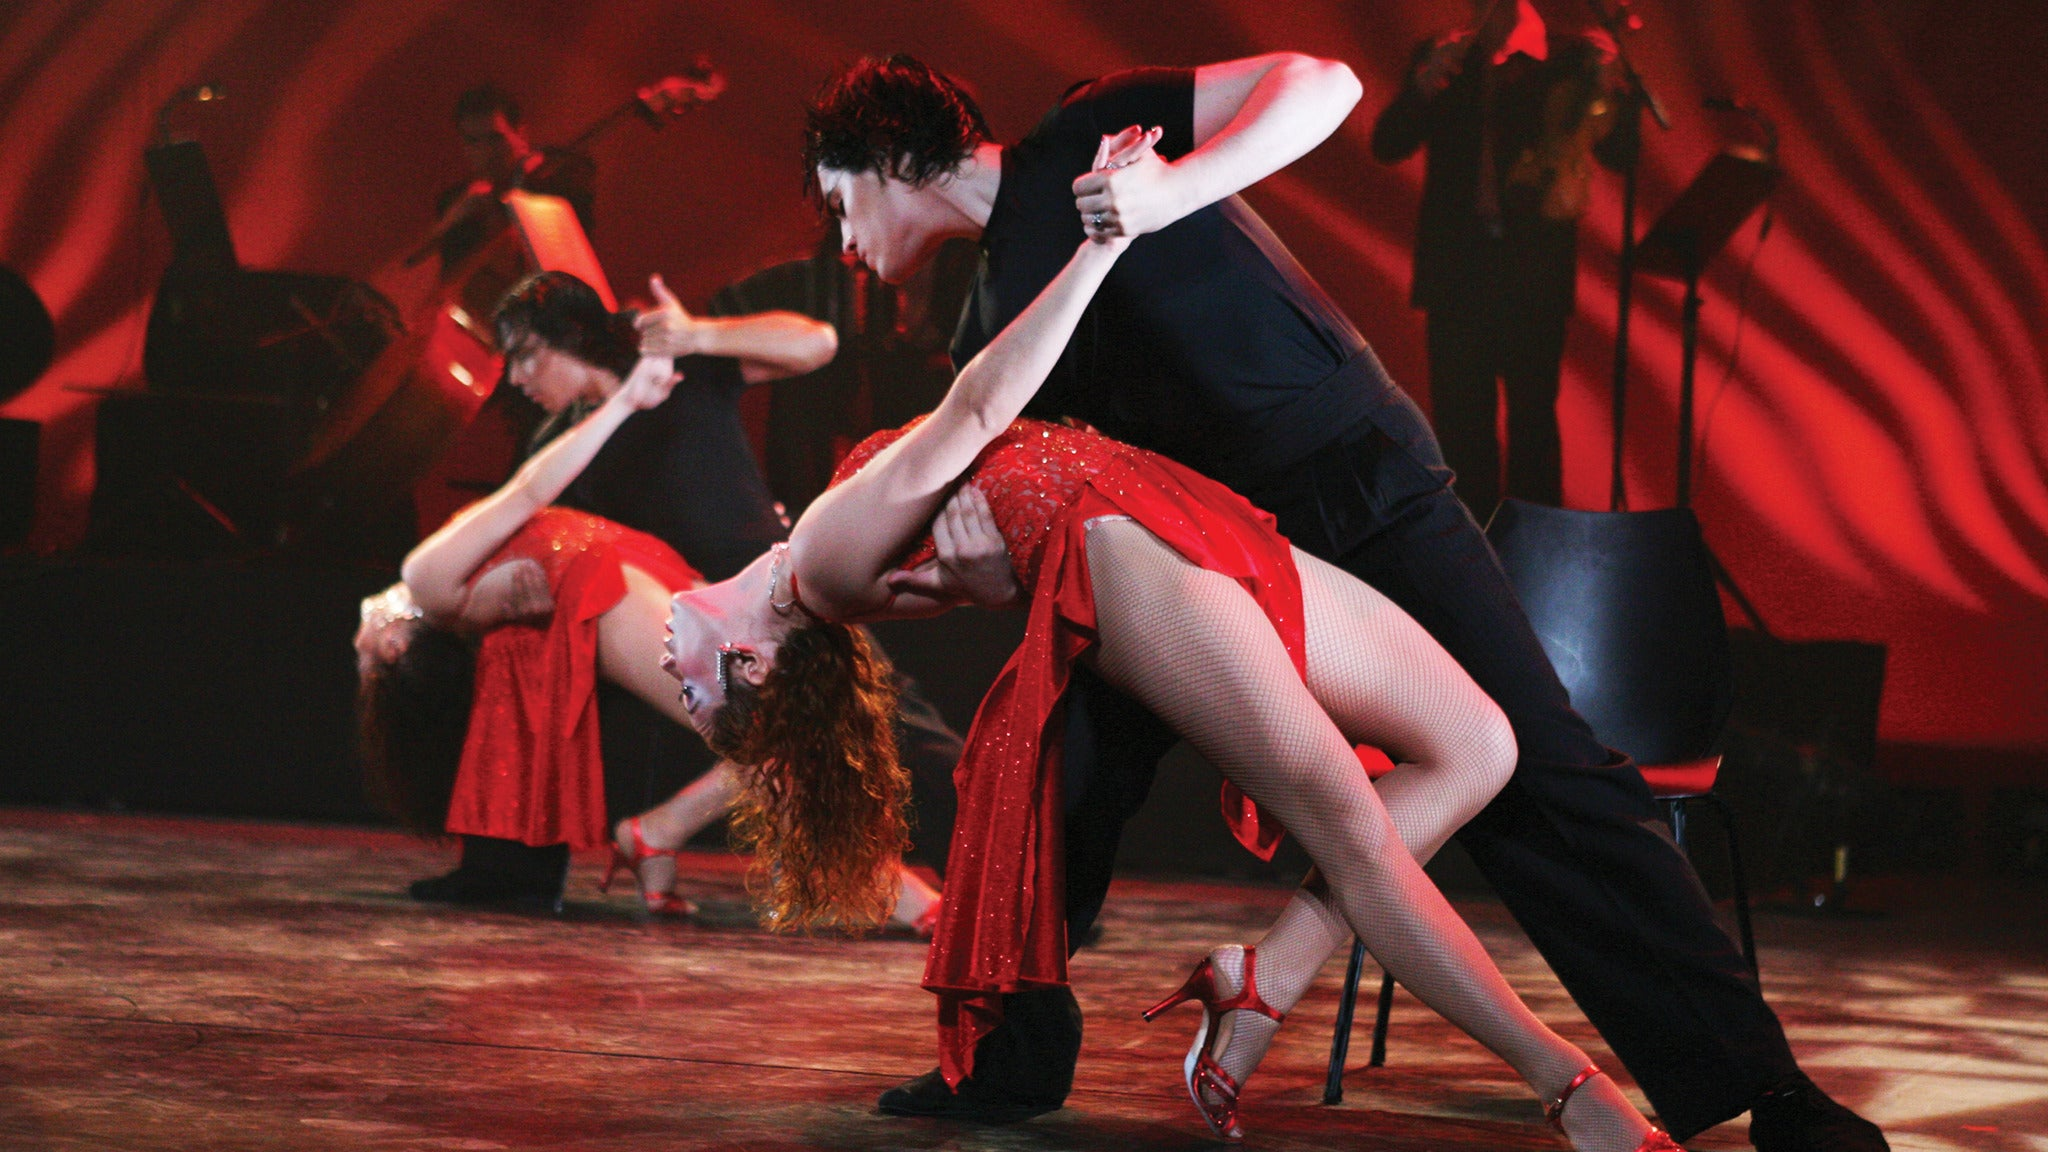 ARTS SA Presents Tango Fire